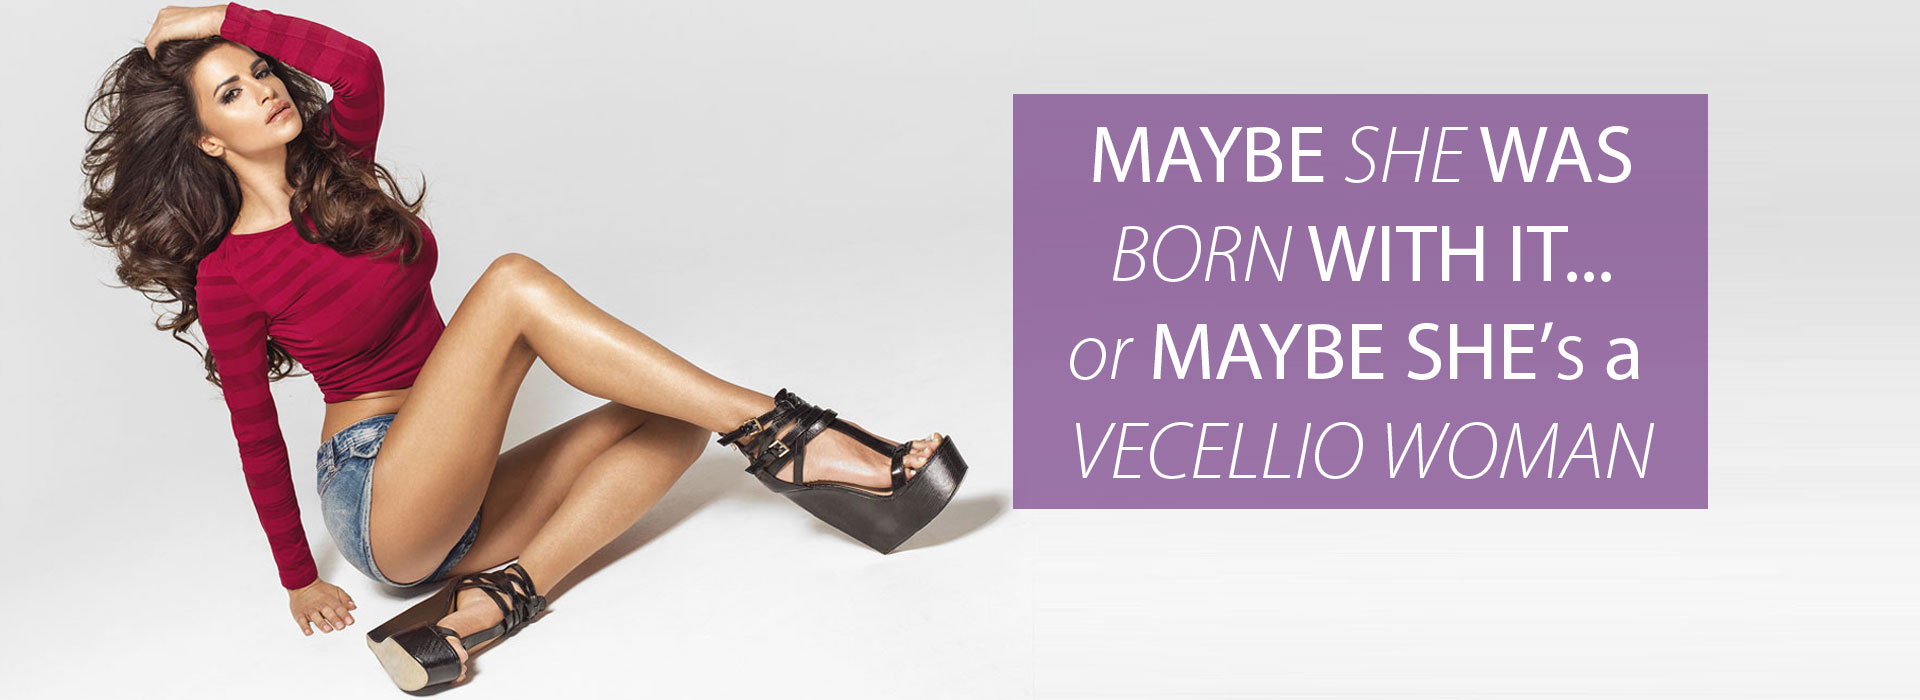 laser-treatment-cellulite-legs-lake-norman-aesthetics-concierge-med-spa-laser-center-mooresville-nc-28117-she-is-vecellio-woman